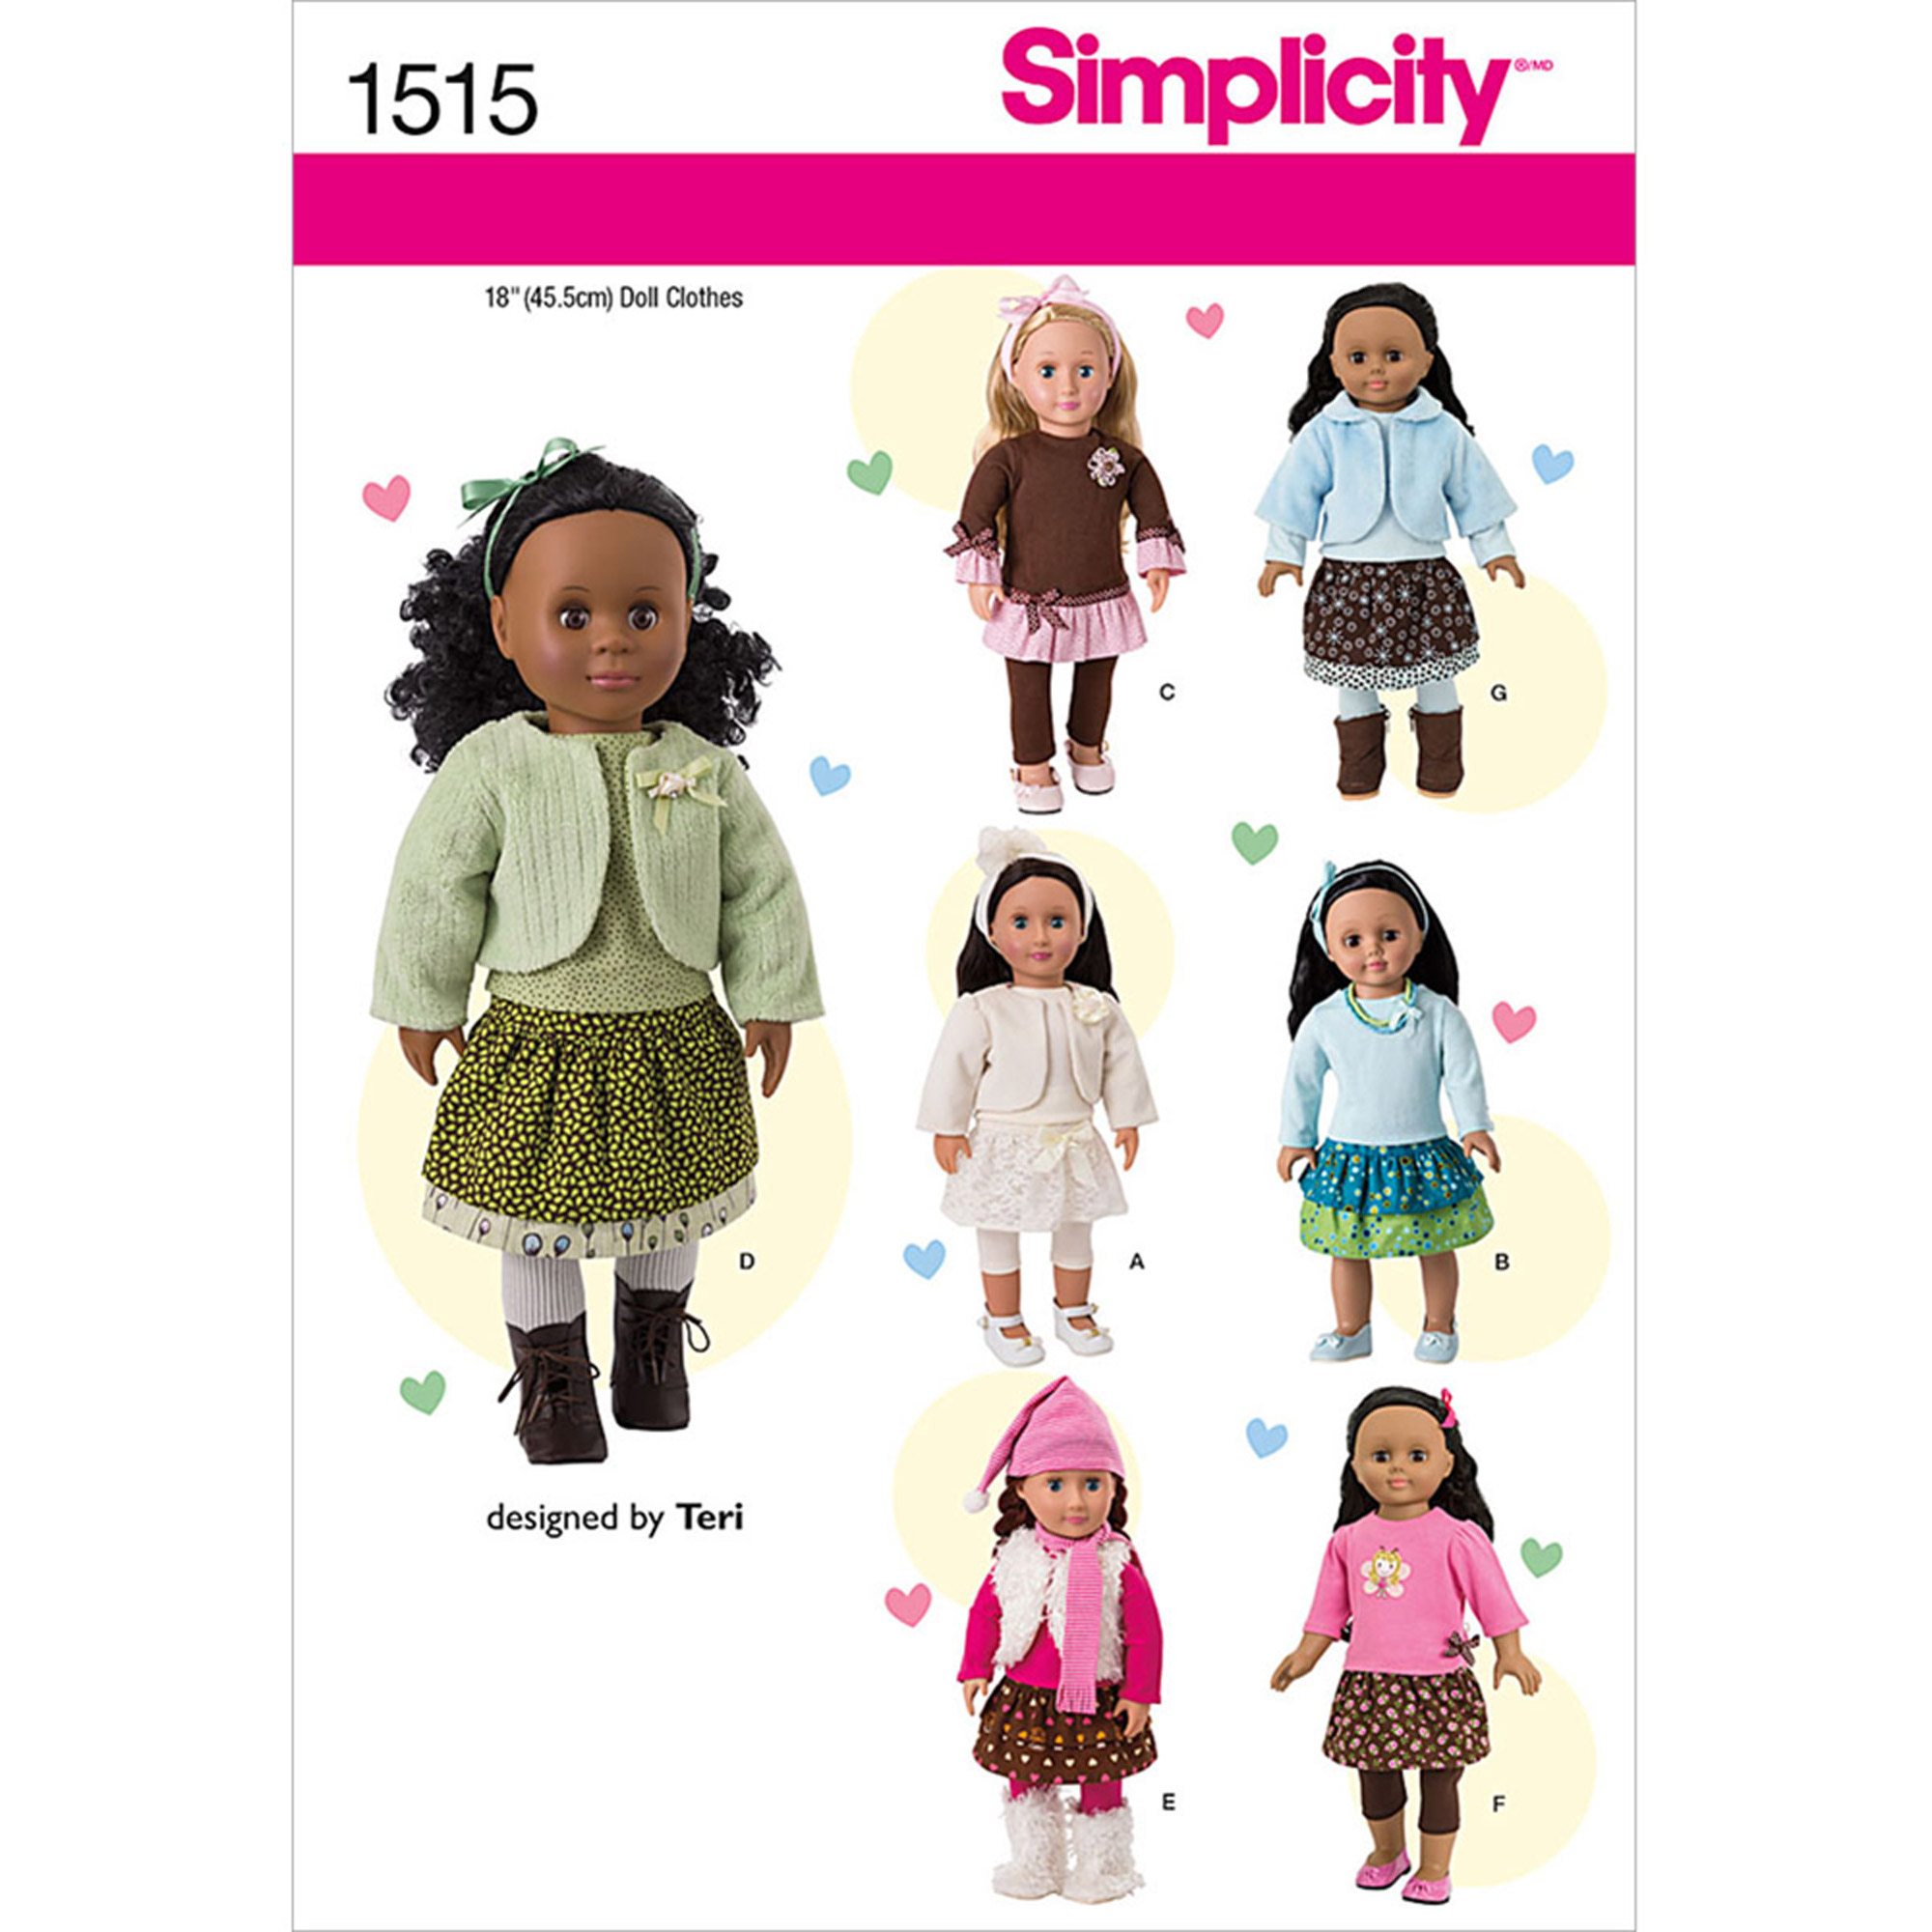 Simplicity Patterns Crafts Doll Clothes, One Size